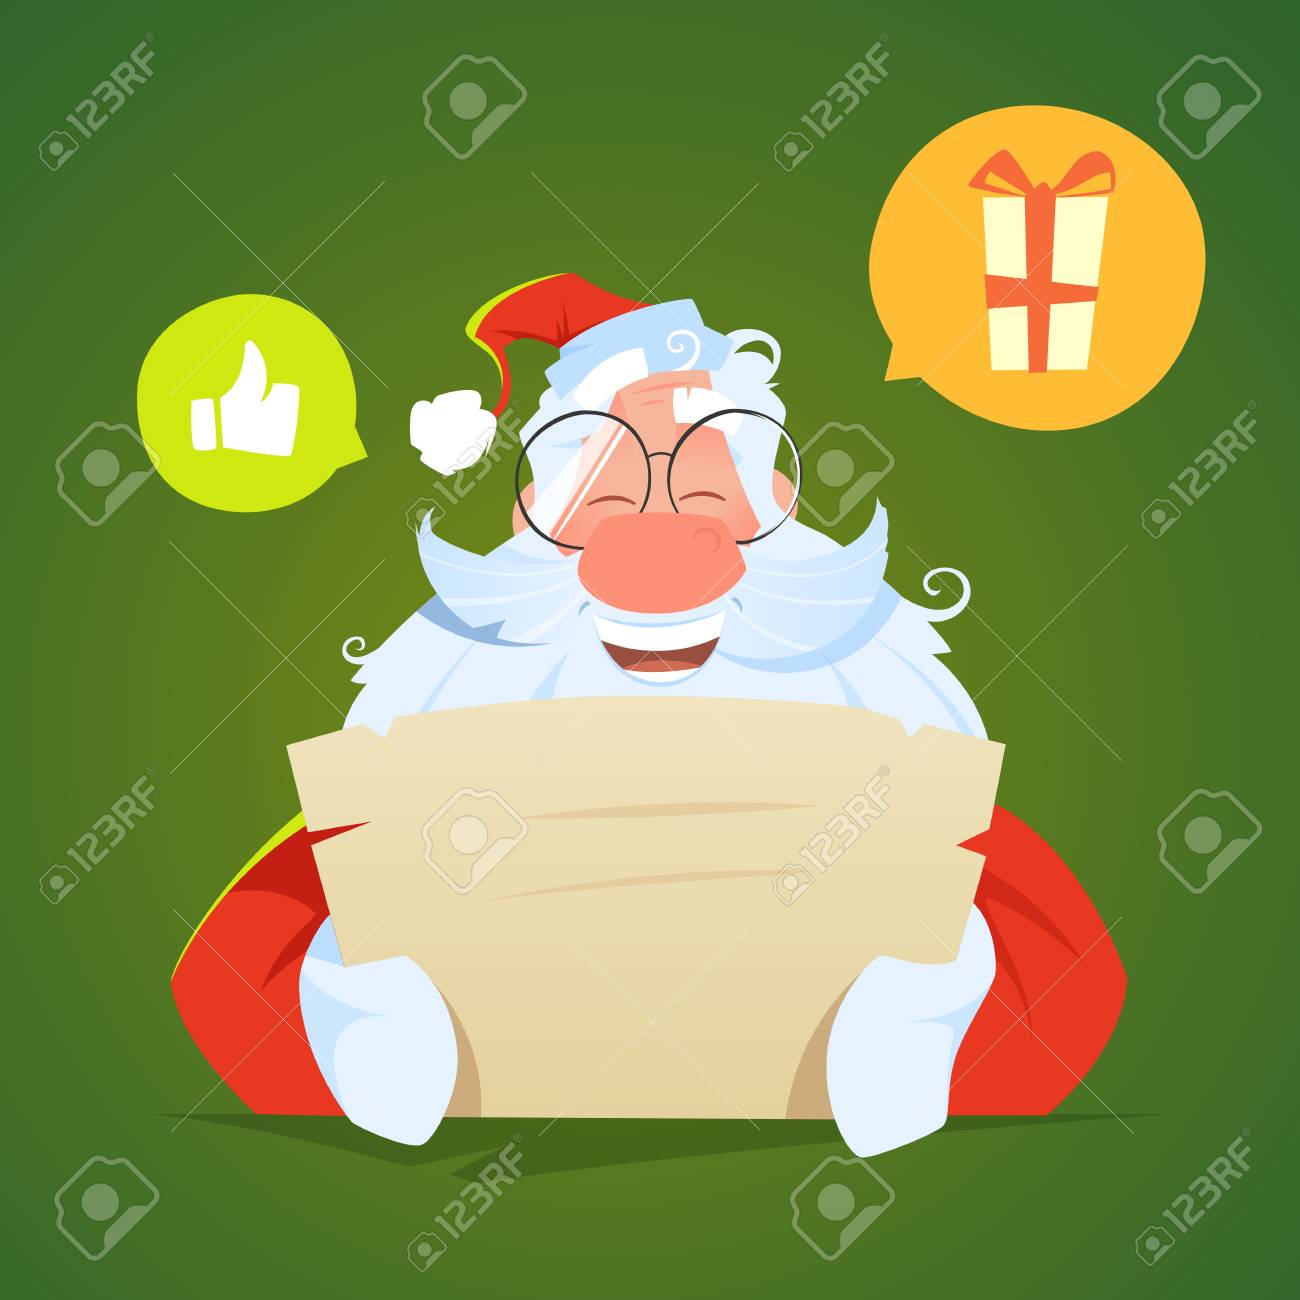 Happy smile santa claus reading a letter and laughs - 88896312